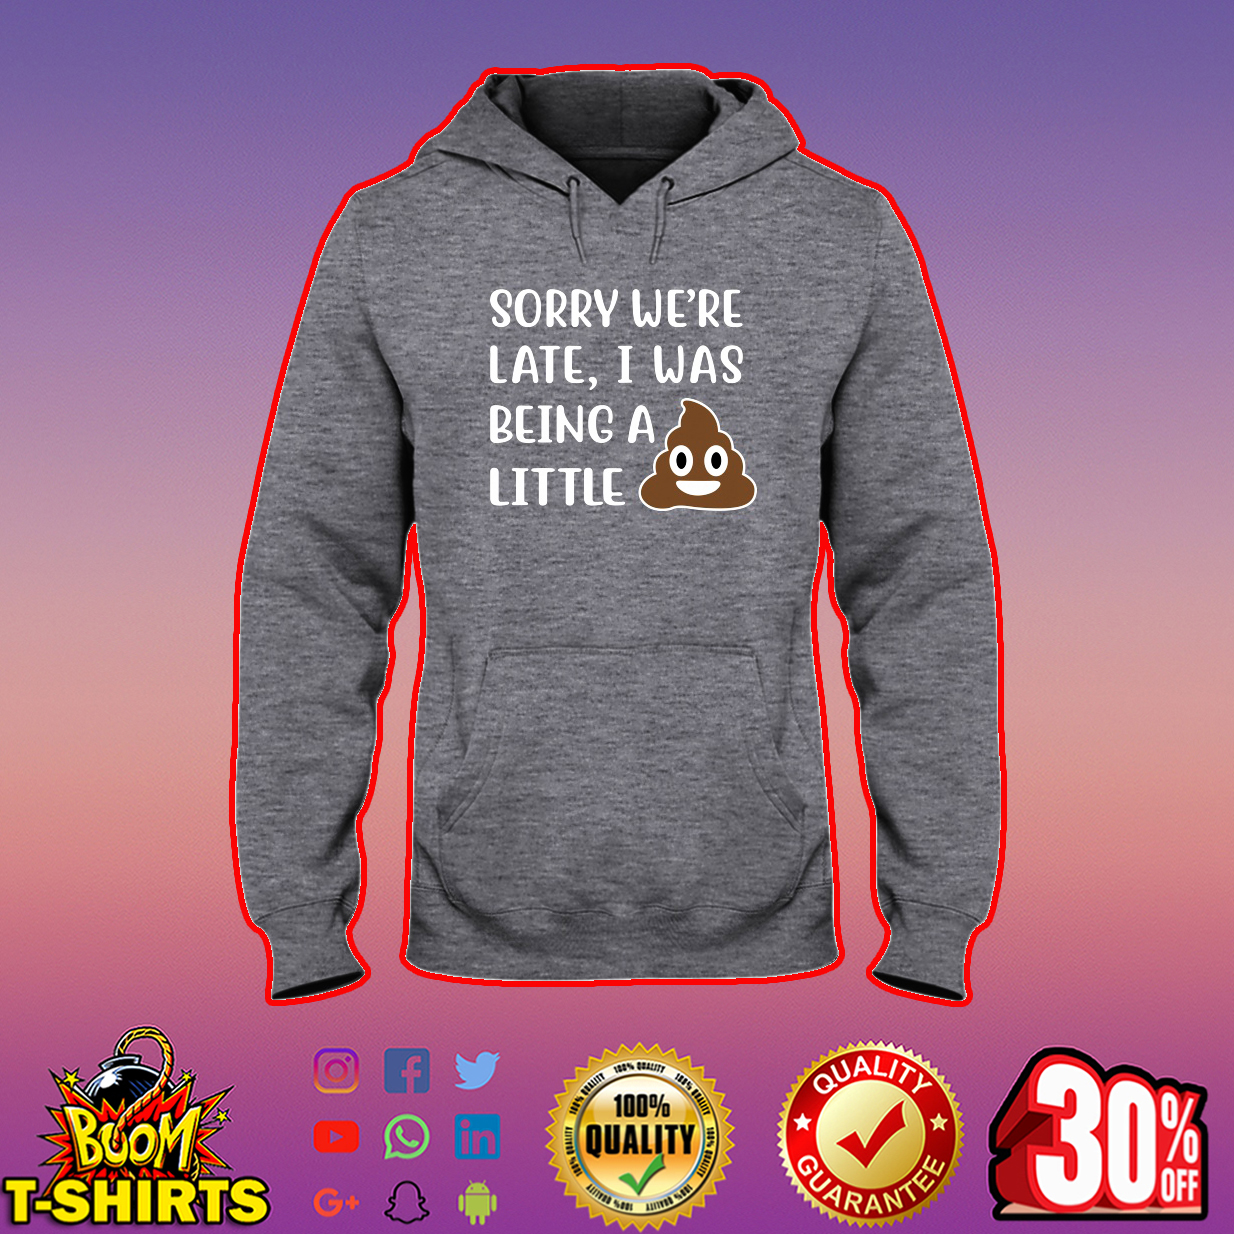 Sorry We're Late I Was Being a Little Shit hooded sweatshirt